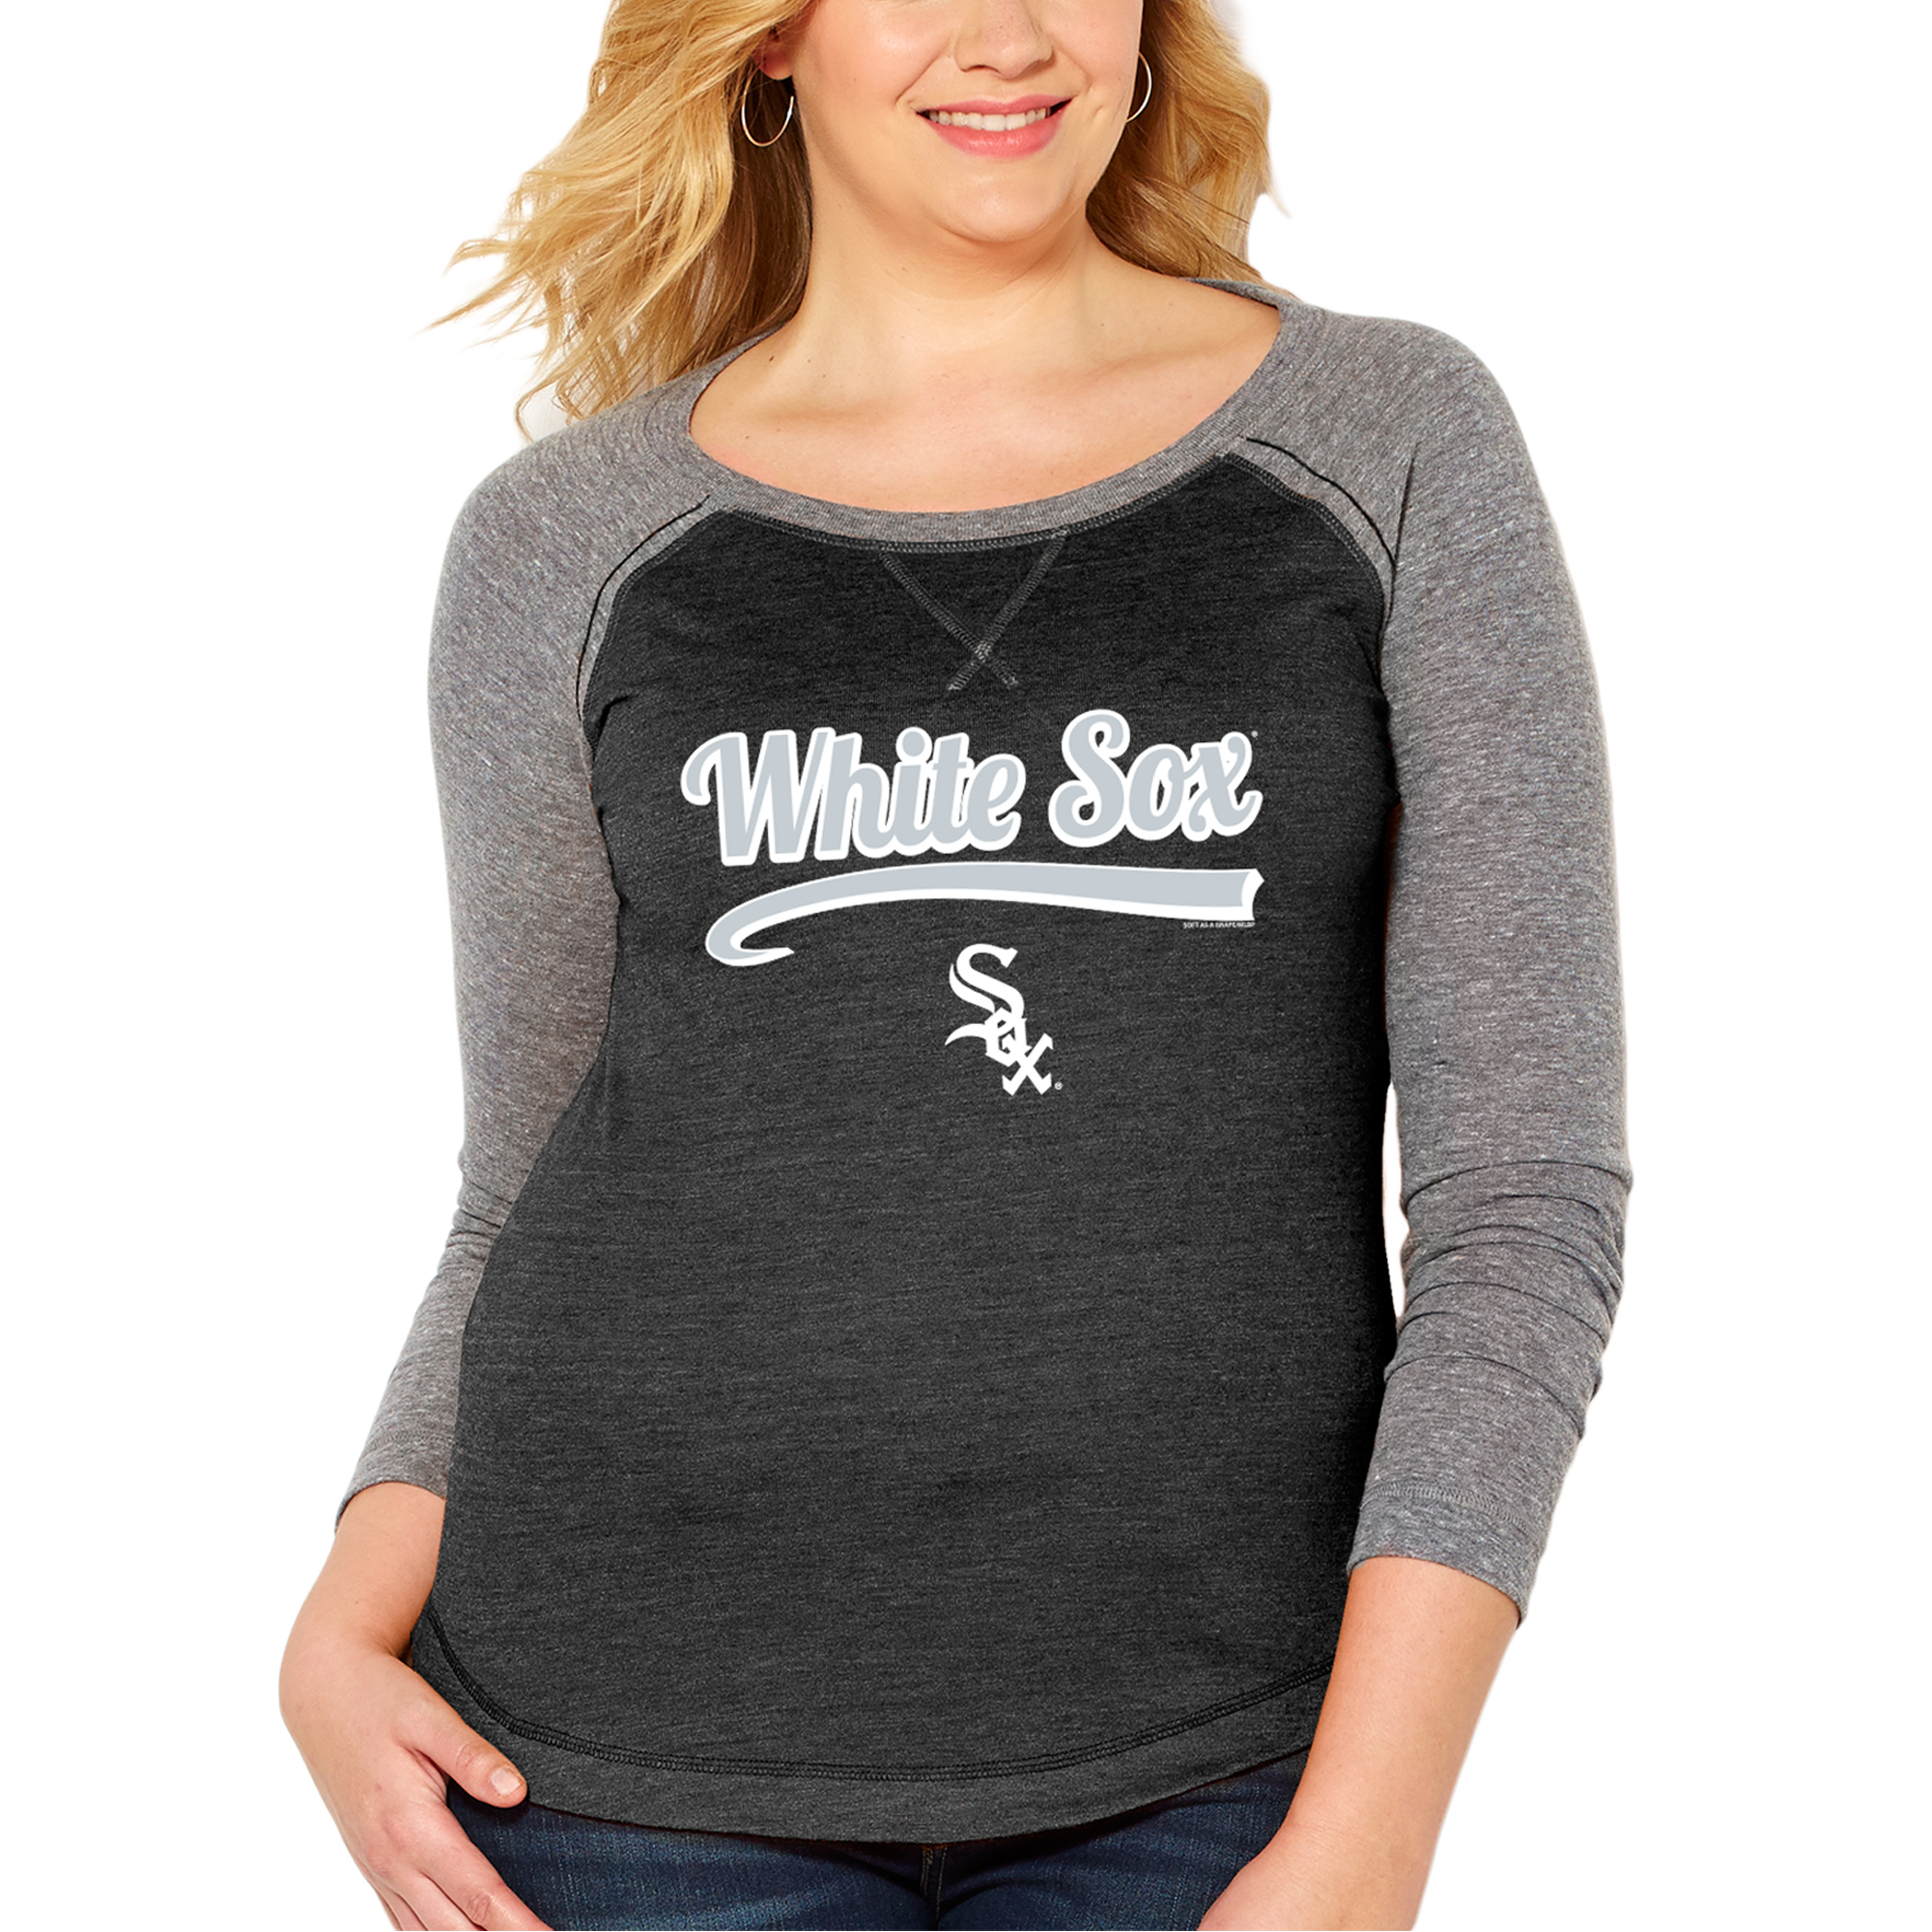 Chicago White Sox Soft as a Grape Women's Plus Size Long Sleeve Raglan T-Shirt - Heather Black